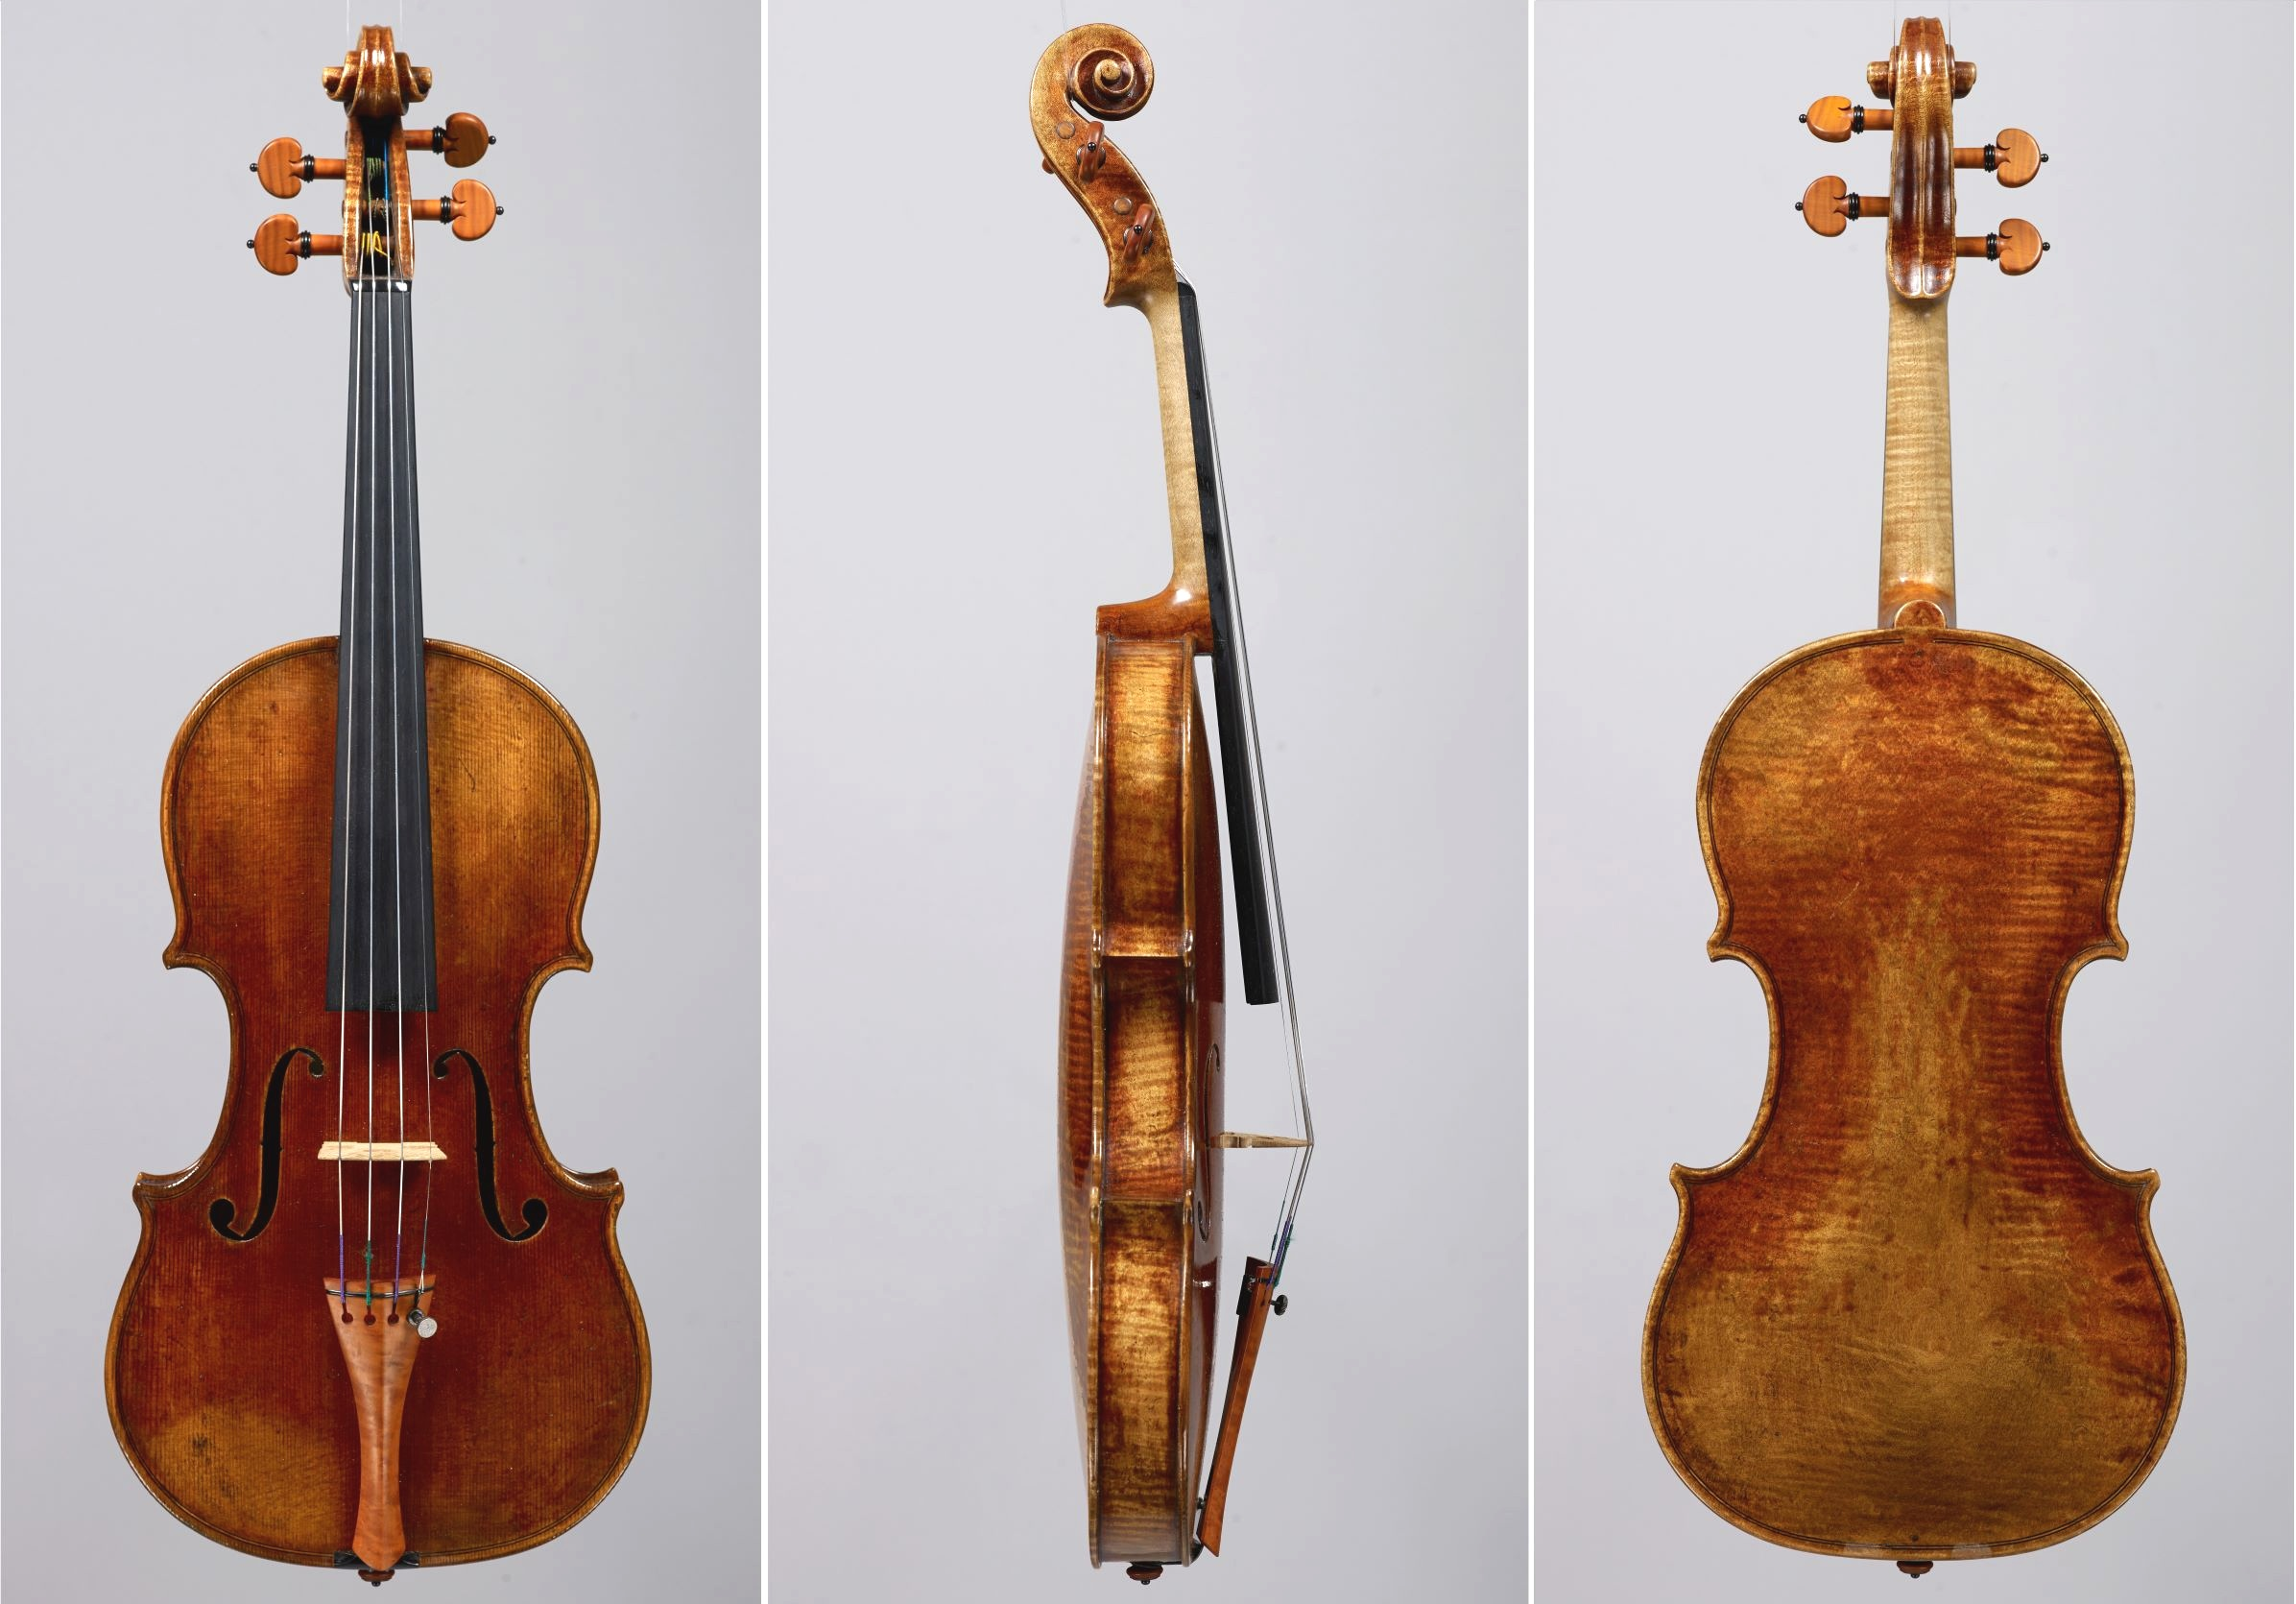 Guadagnini model violin, played by Glenn Dicterow